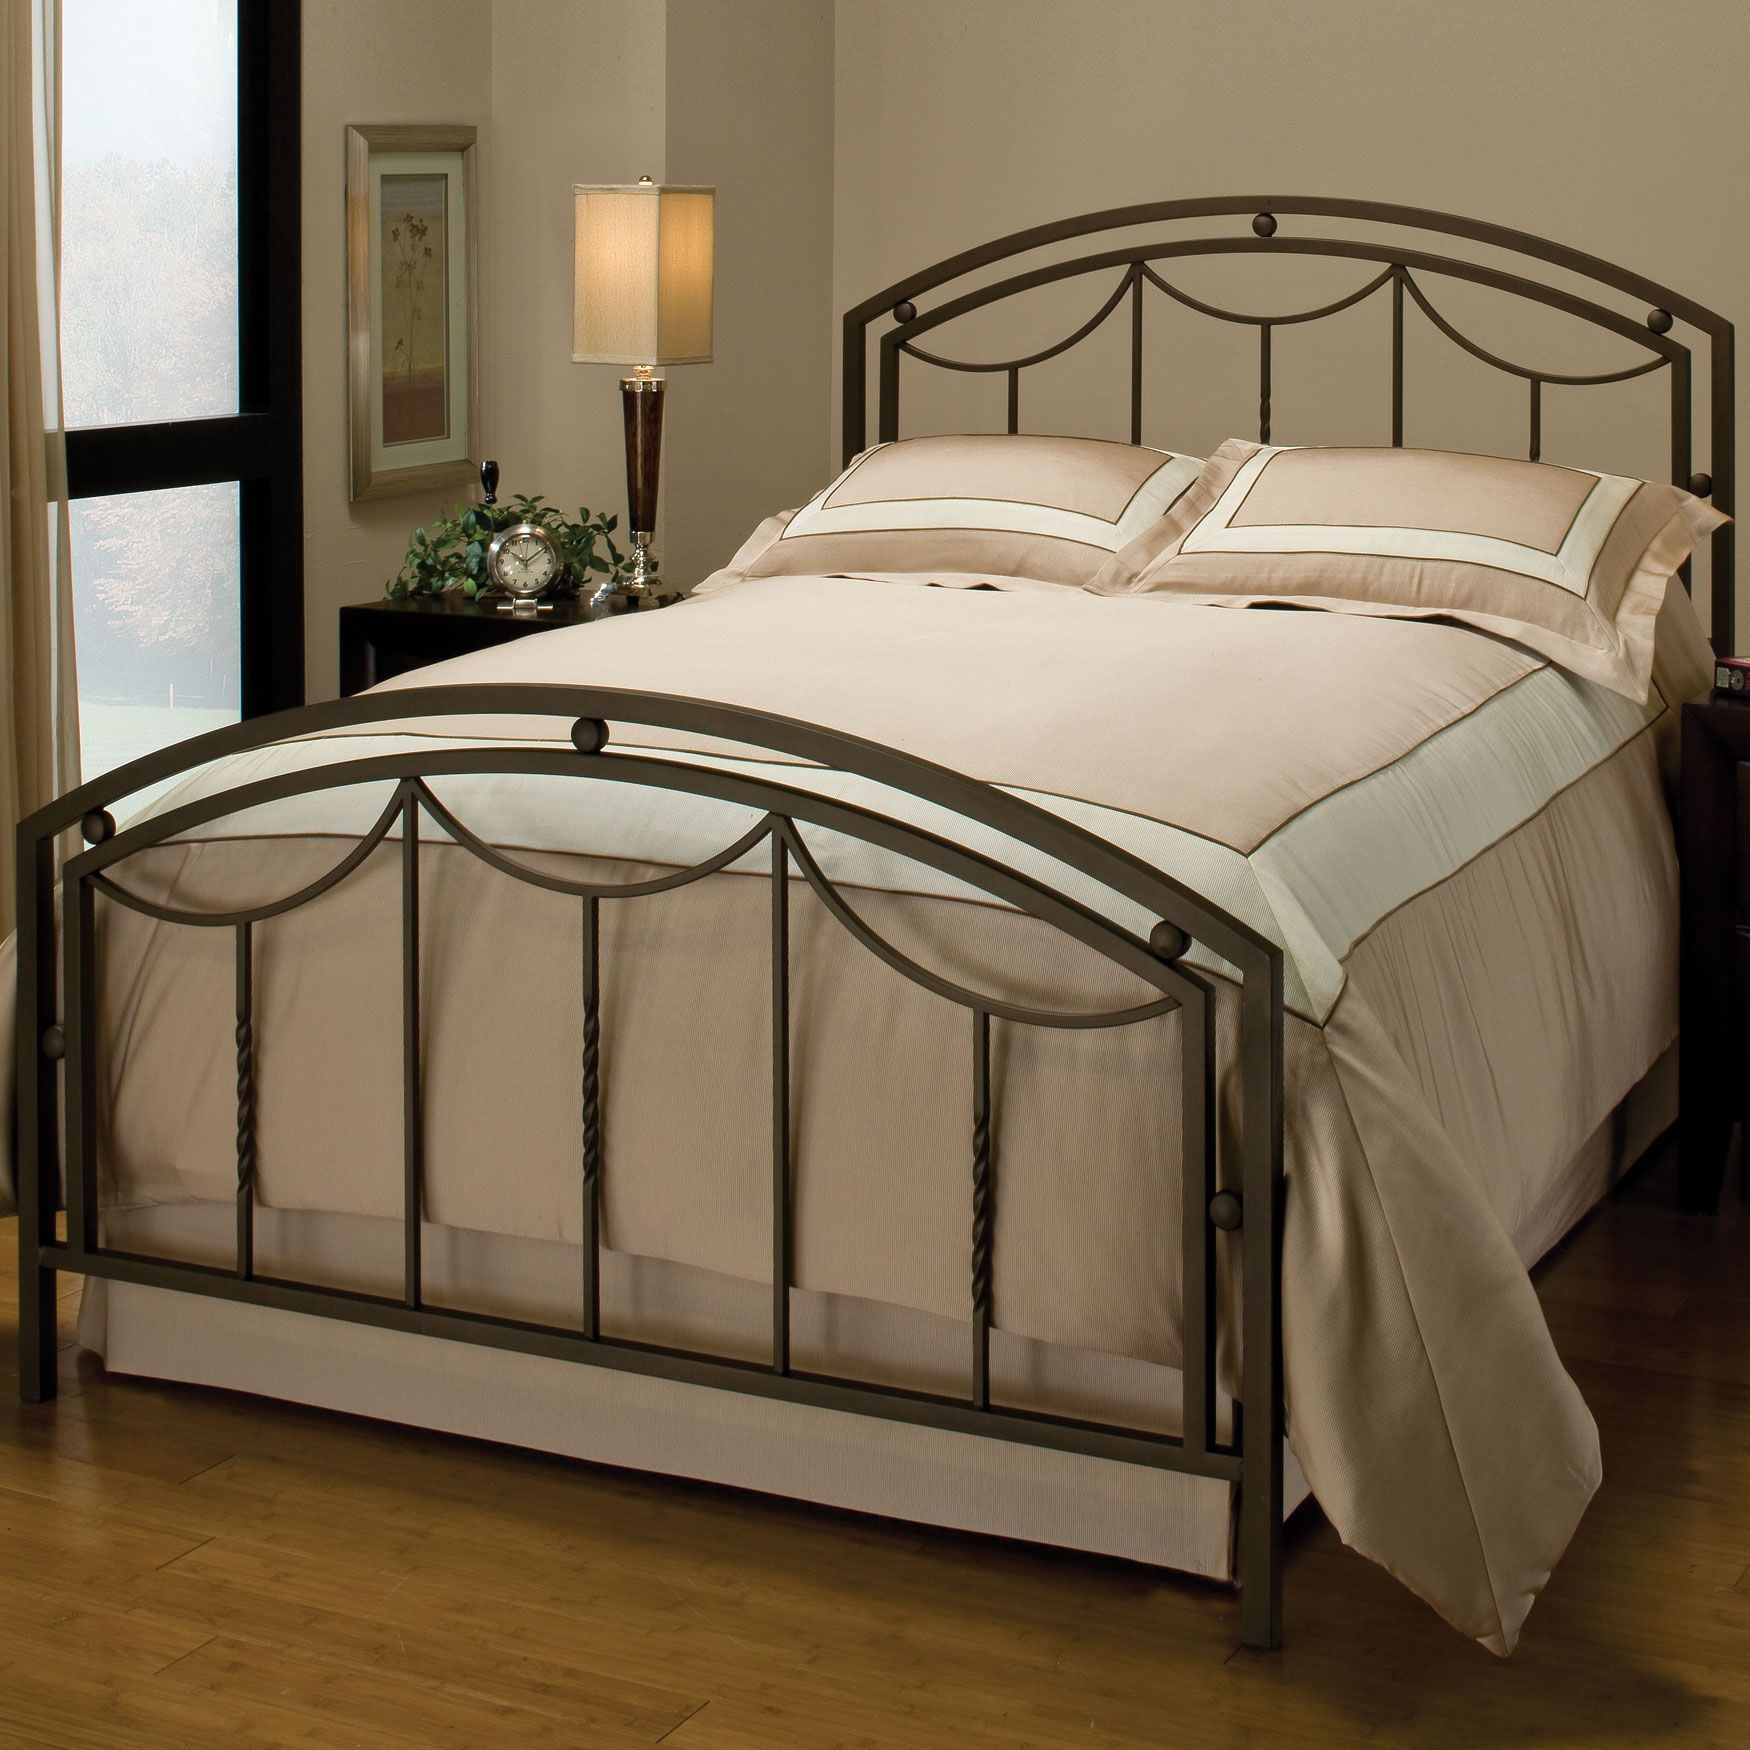 Hillsdale Arlington Bed with Bed Frame,